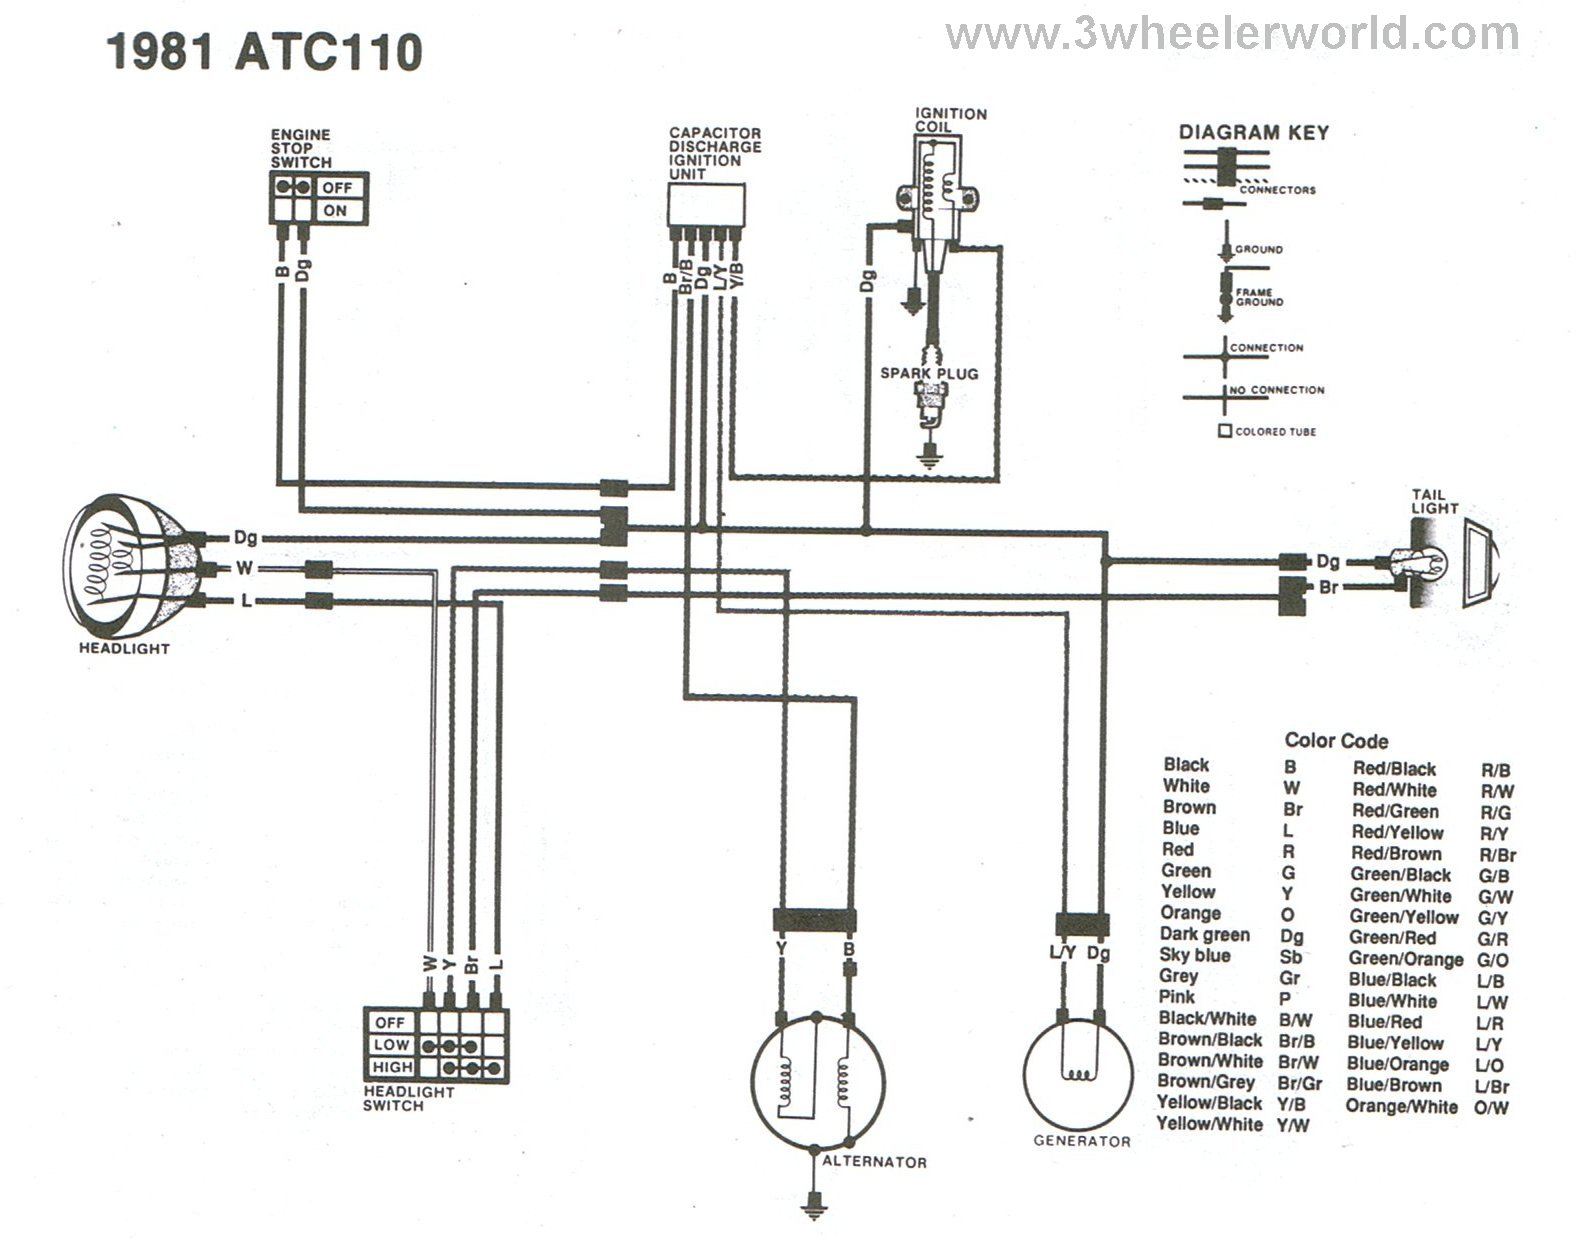 ATC110x81 3 wheeler world tech help honda wiring diagrams  at panicattacktreatment.co